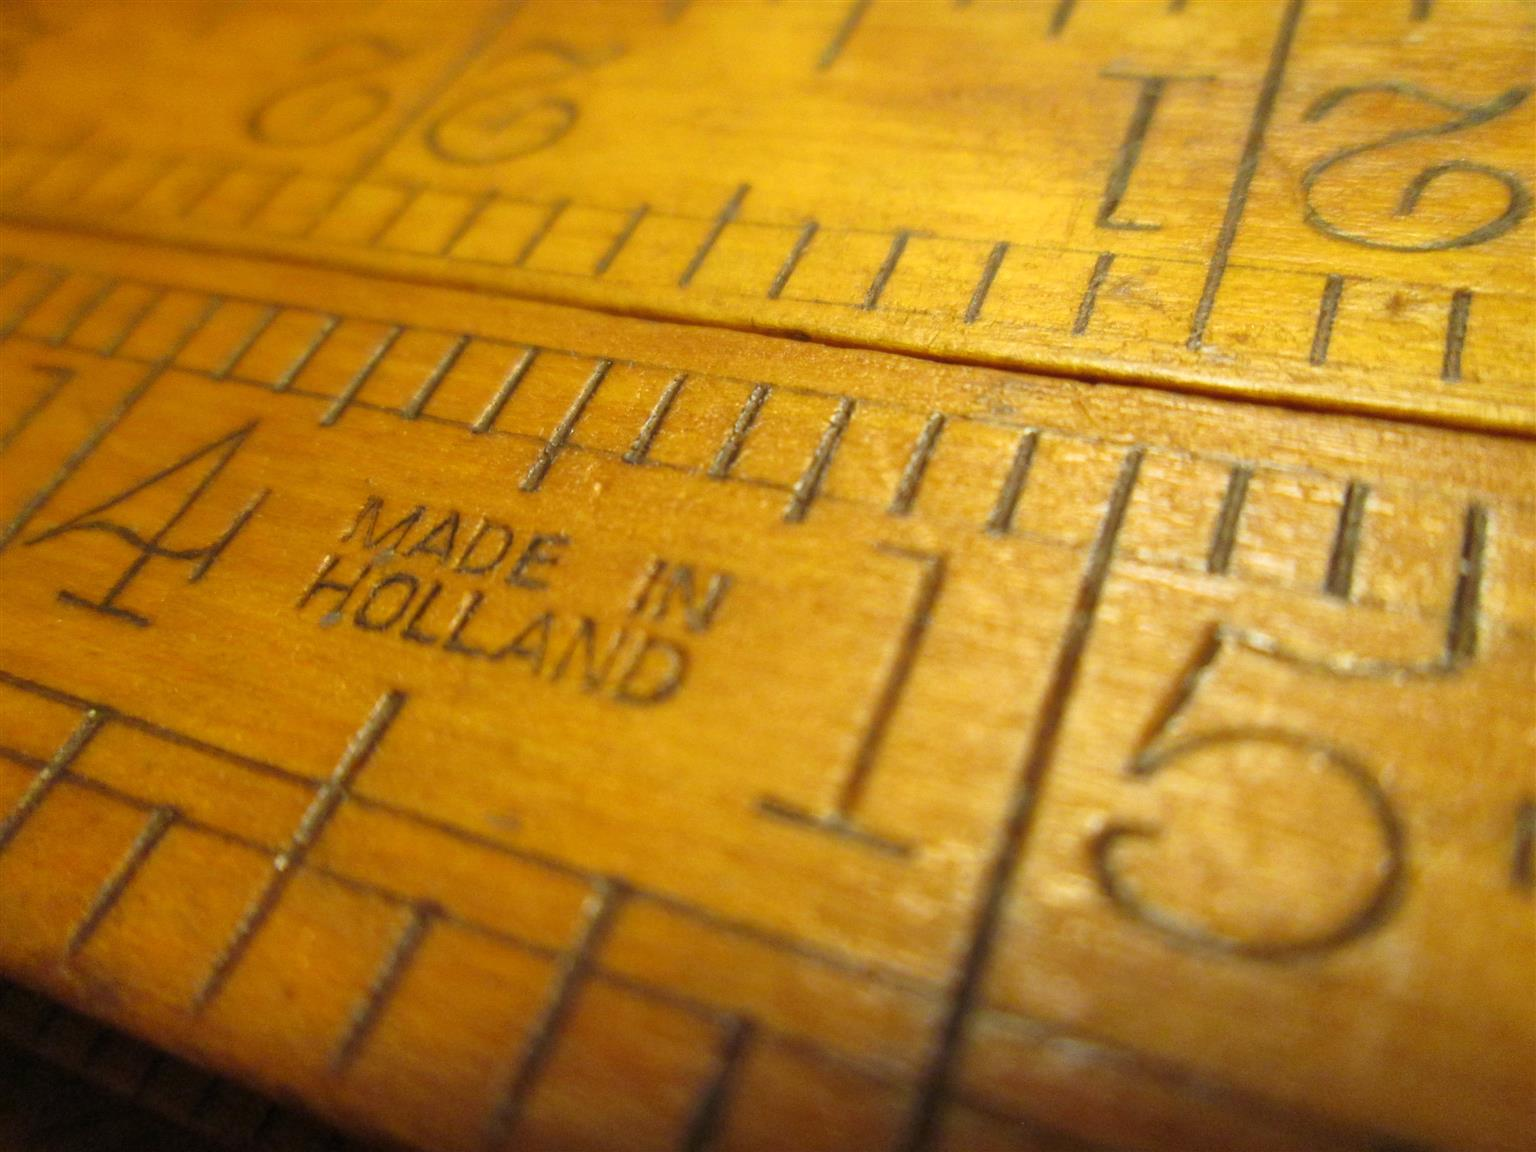 Vintage folding ruler: Sybren Boxwood & Brass, 3 feet, 4 segments, Holland, collectable tool